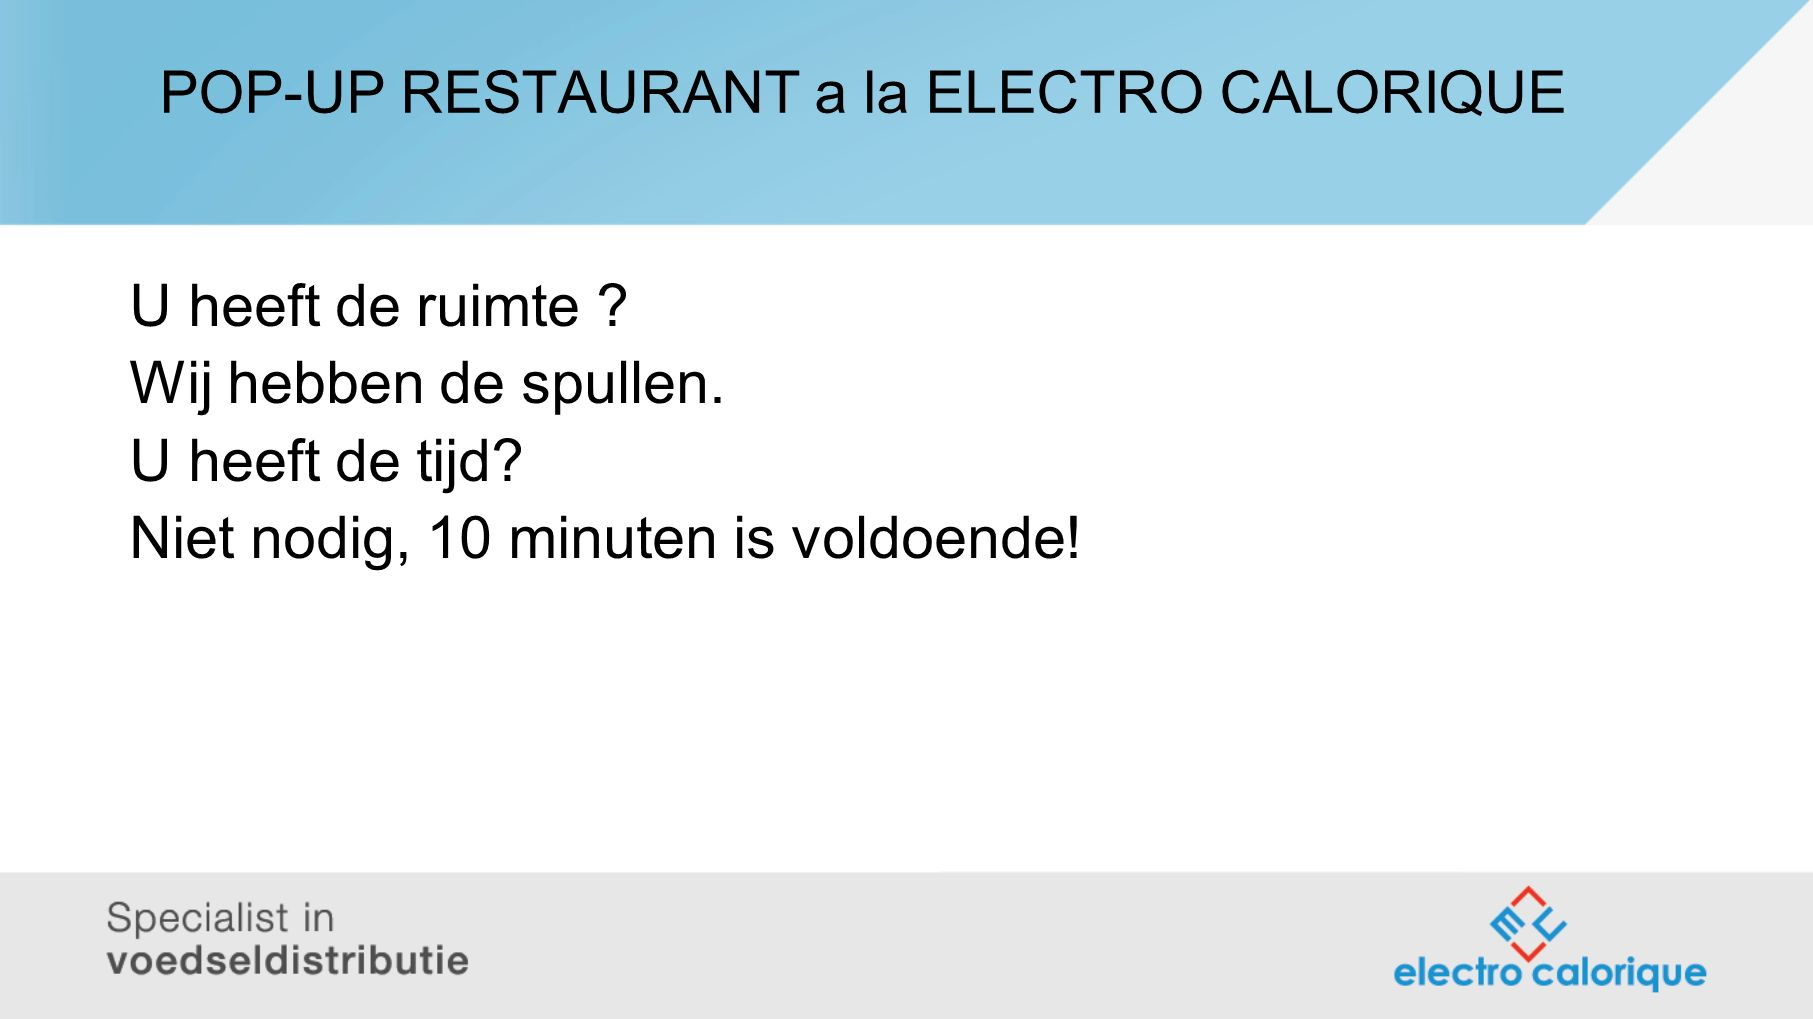 POP-UP RESTAURANT a la ELECTRO CALORIQUE U heeft de ruimte .